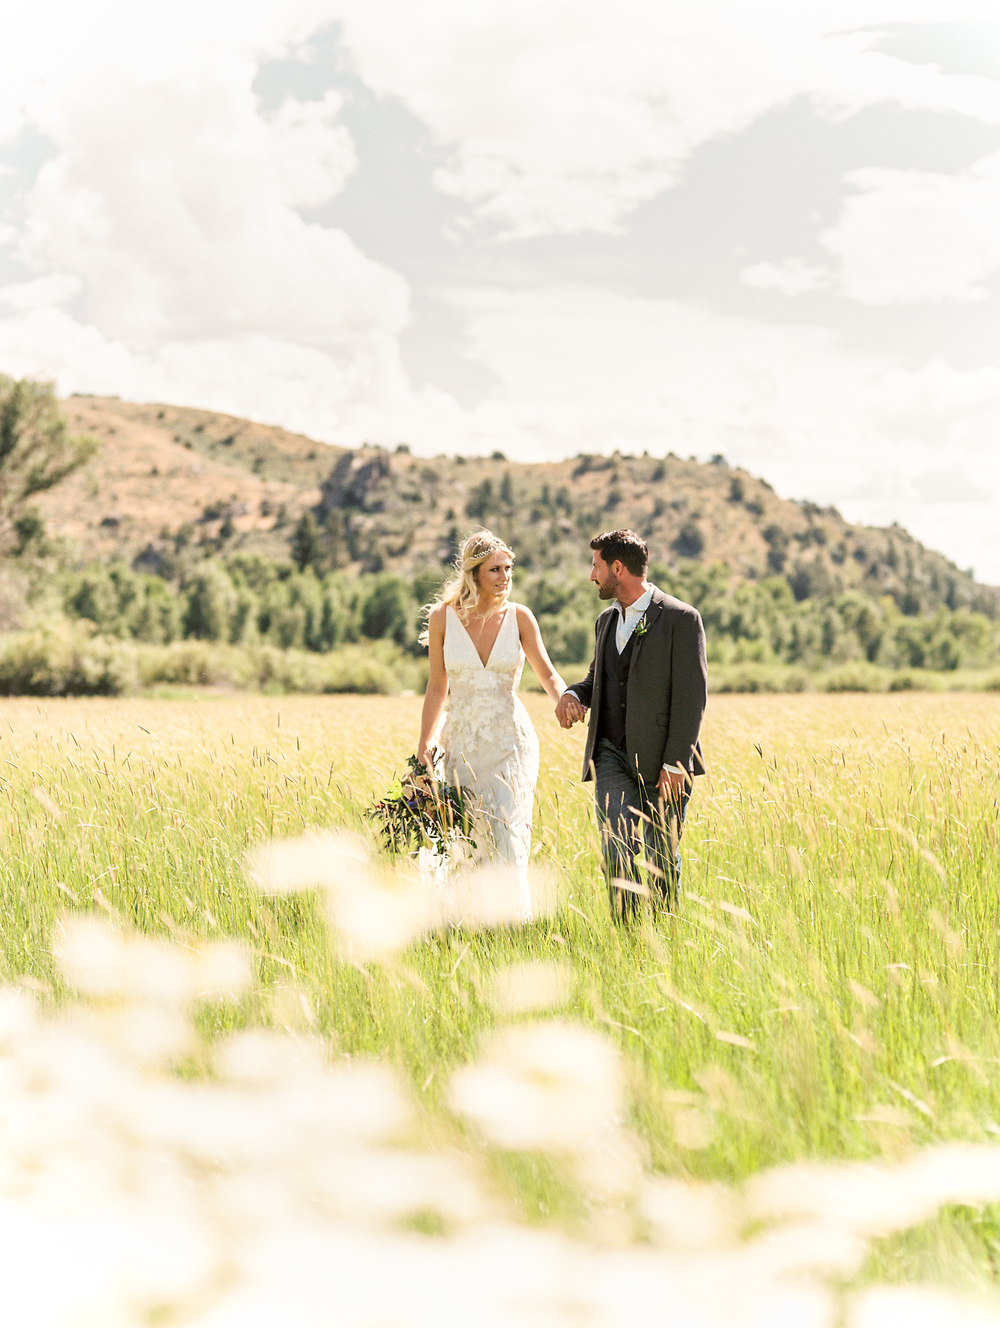 Brush Creek Ranch boho wedding look, Claire Pettibone dress, Lisa O'Dwyer Photography-3.jpg